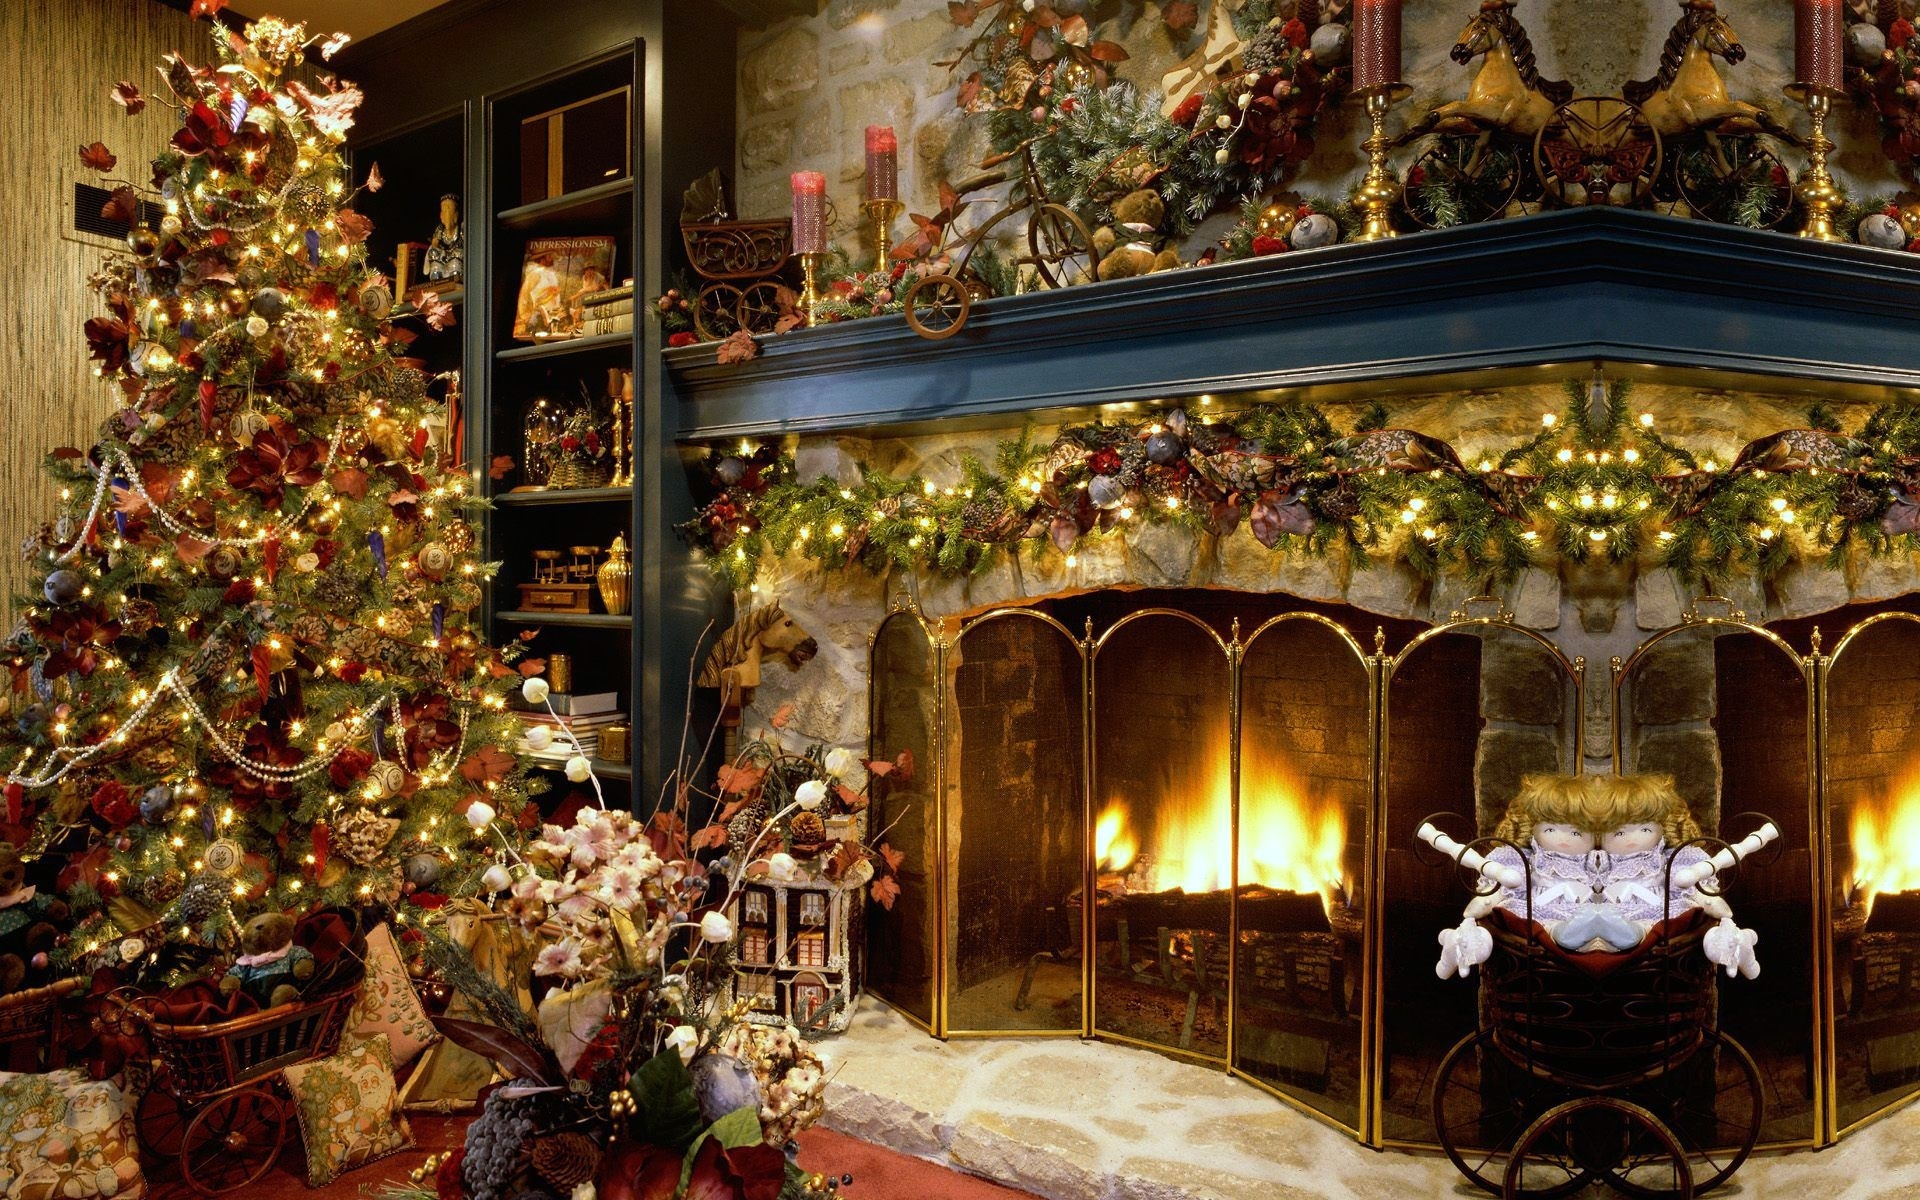 29918 download wallpaper Holidays, Christmas, Xmas screensavers and pictures for free